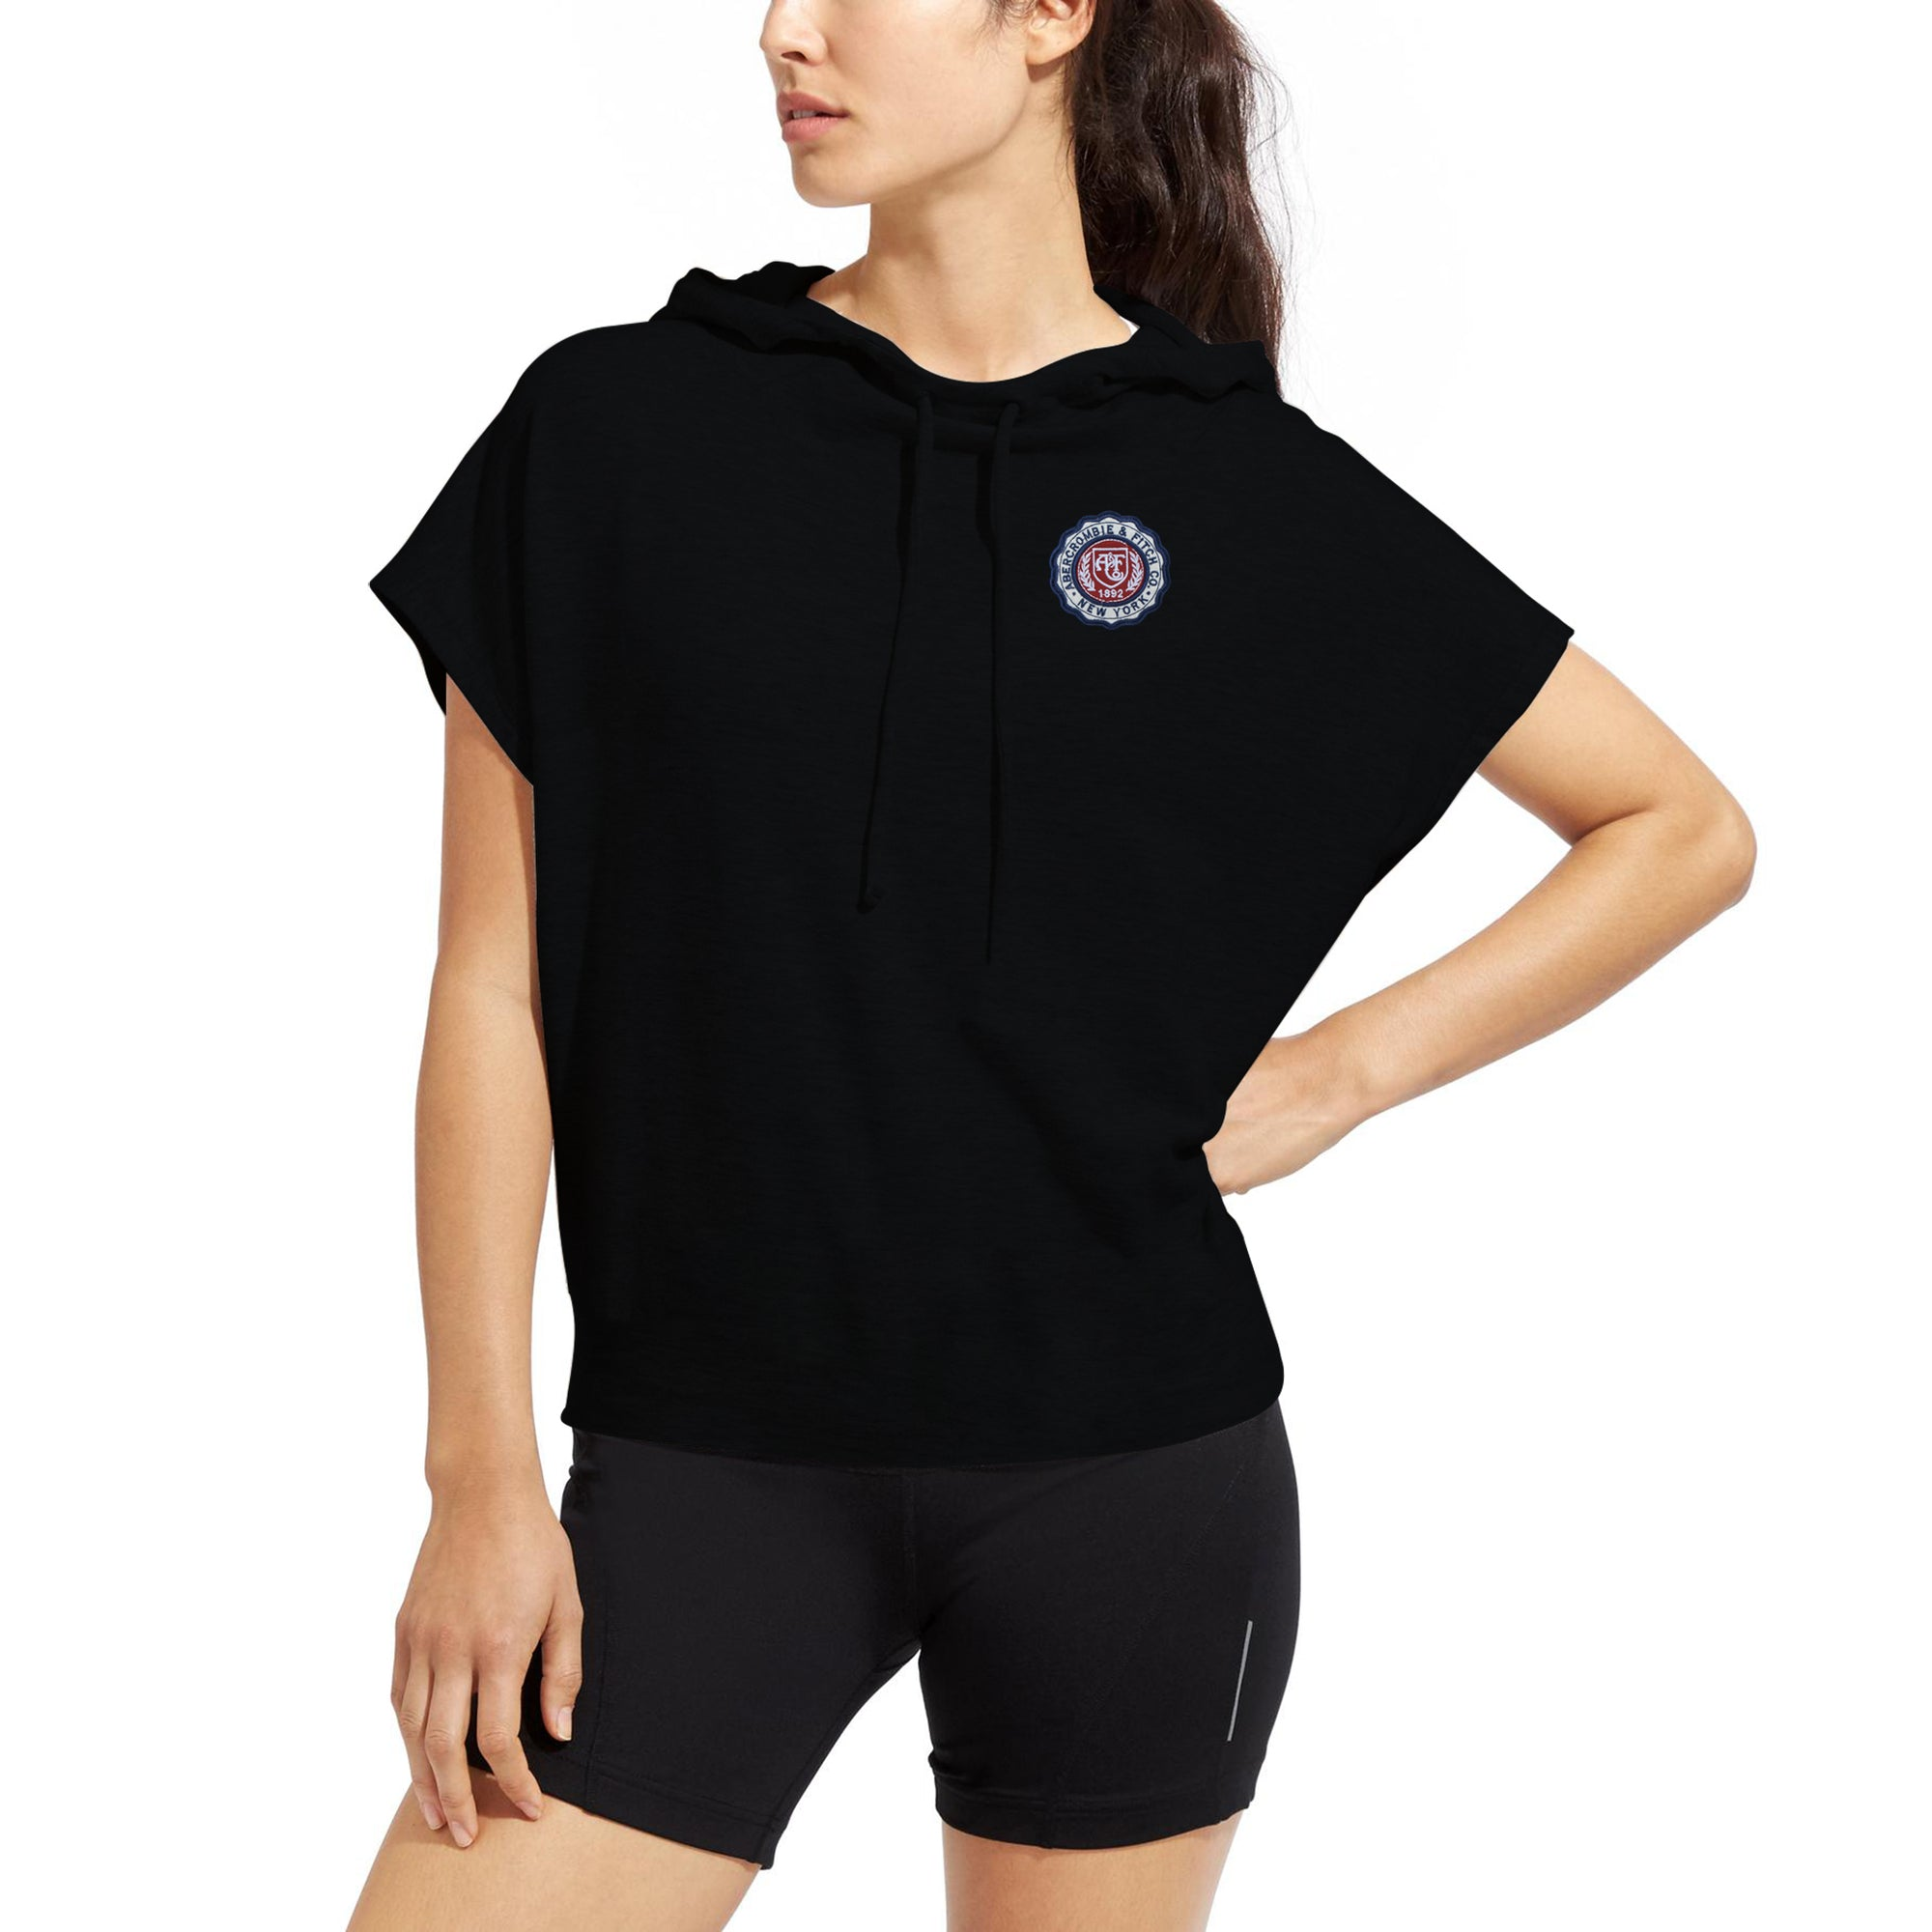 Next Fleece Short Sleeve Top For Ladies-Black-BE7035